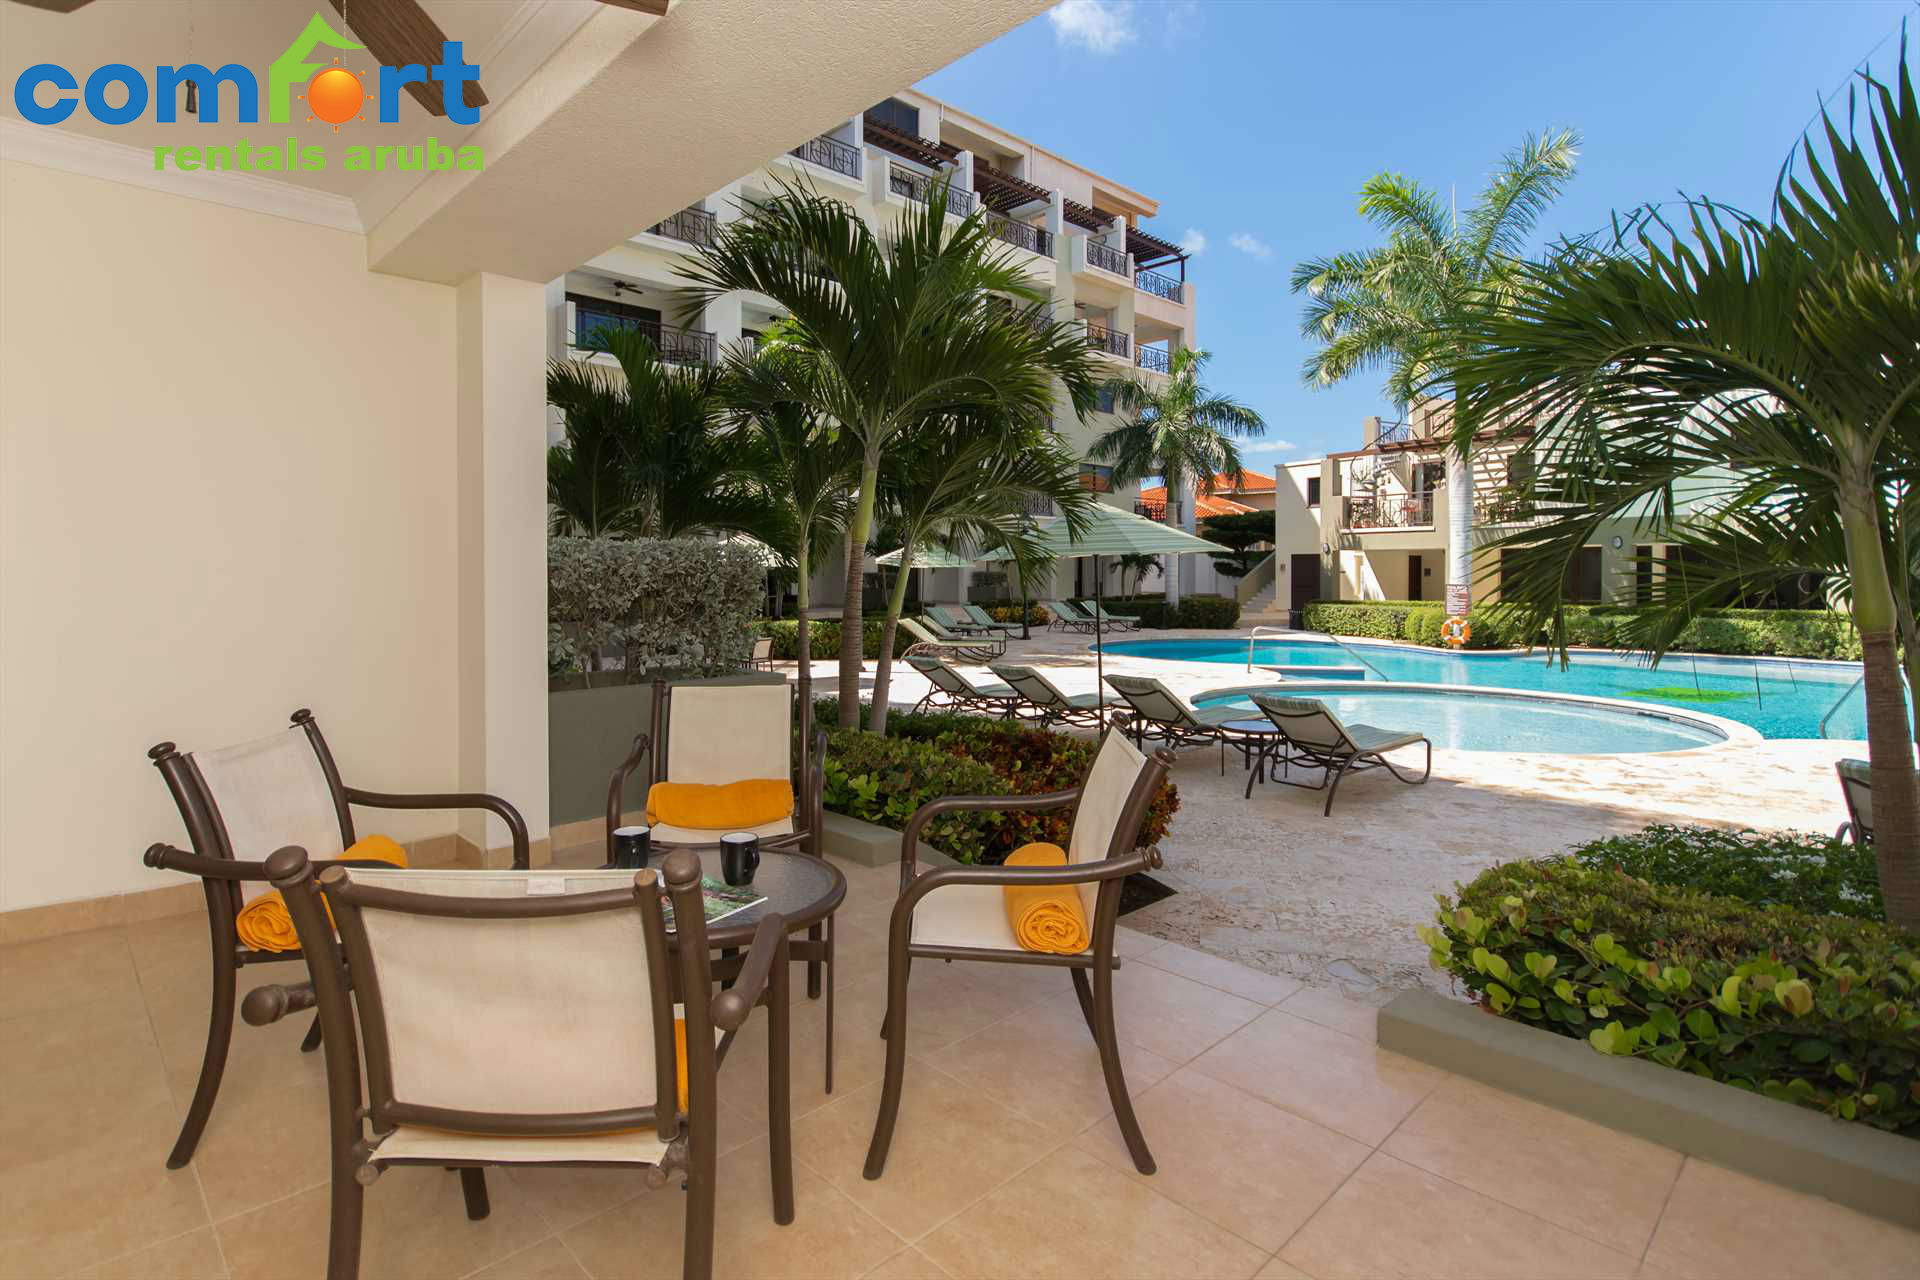 Enjoy your spacious private terrace